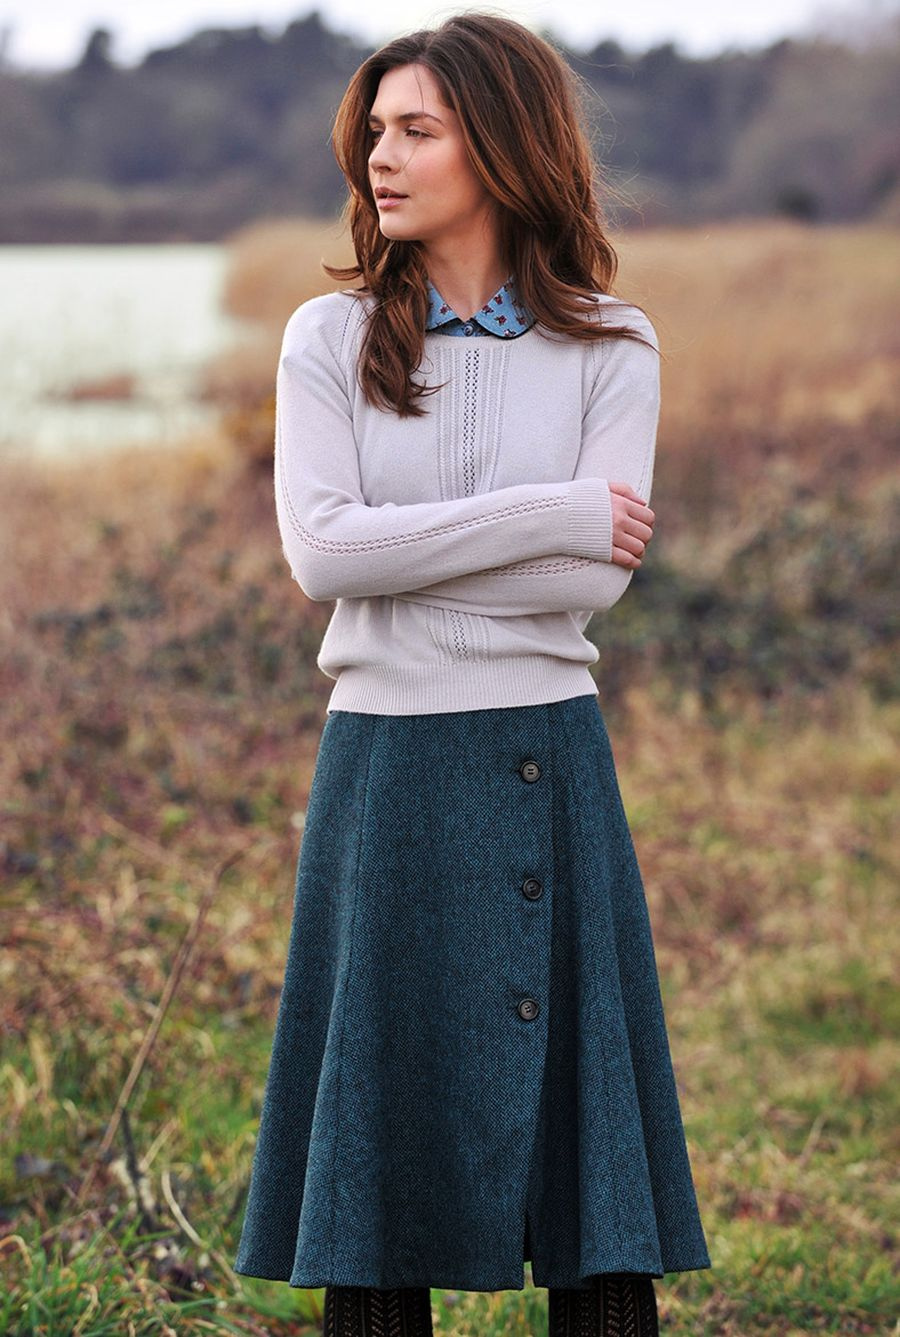 Skirt trends ideas for winter outfits this year 56